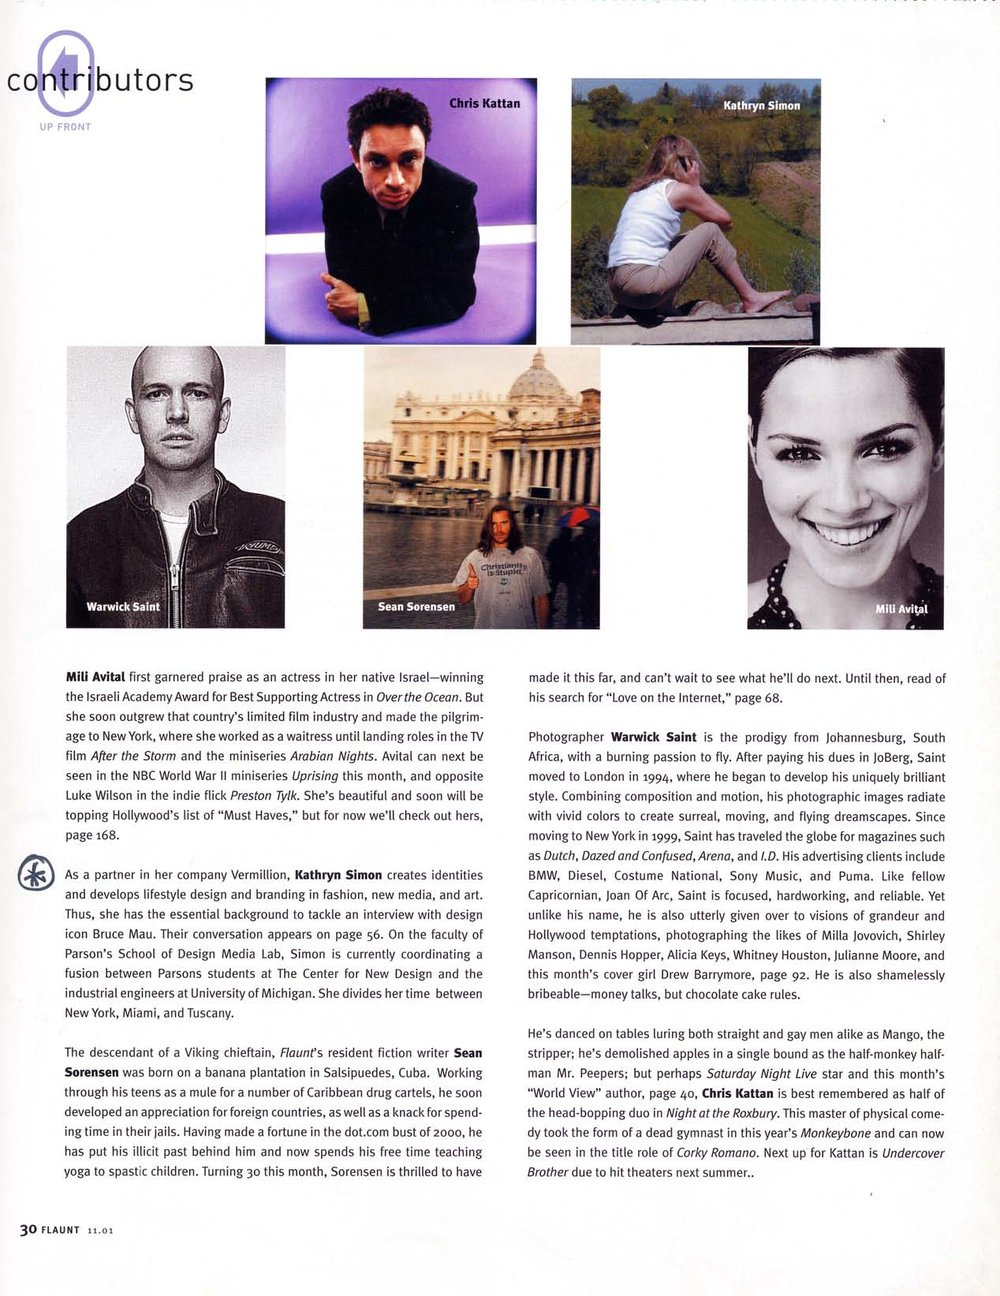 FLAUNTBruce Mau interview Kathryn Simon_Page_4.jpg